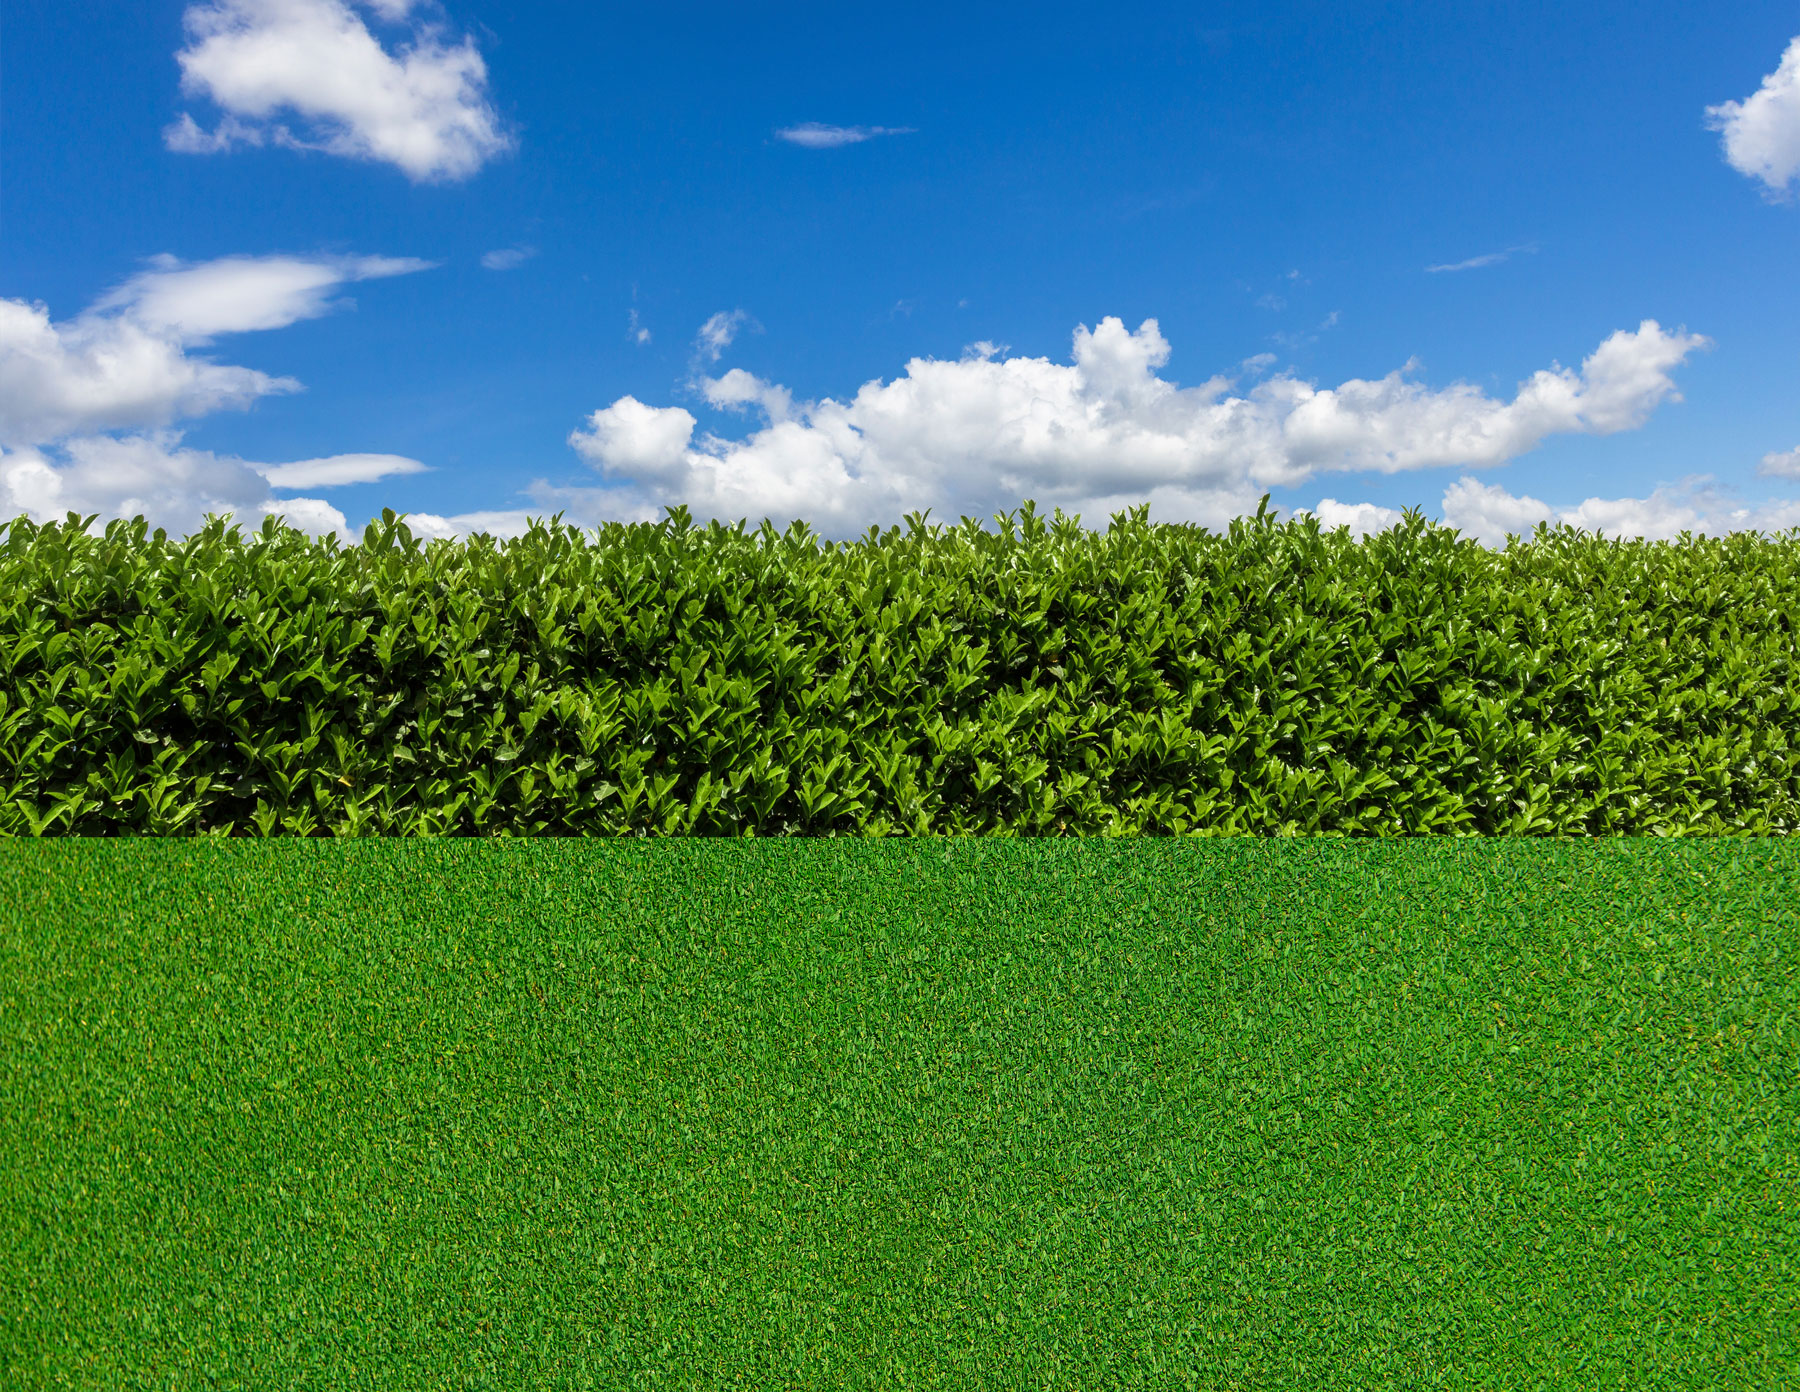 Spring lawn care tips for a green lawn and yard